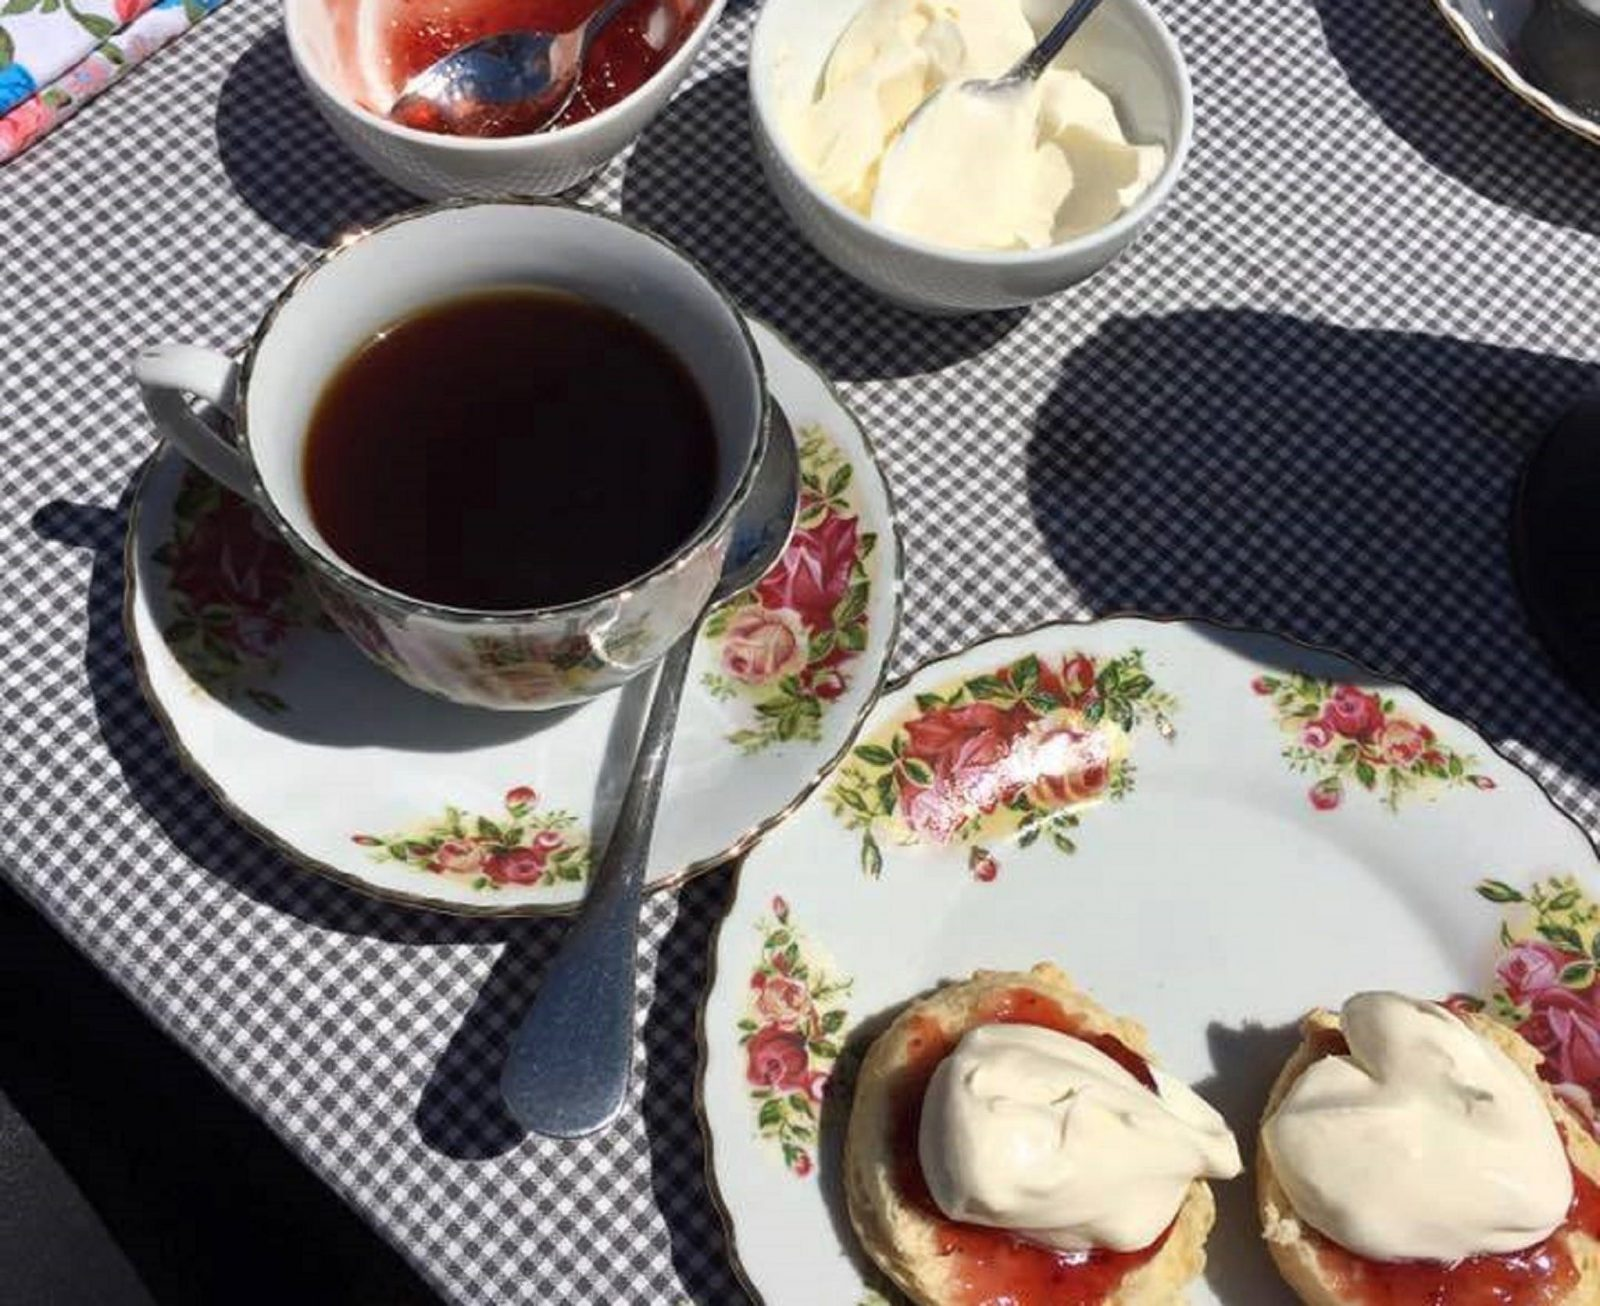 Plate of scones with jam and cream and a cup of black tea